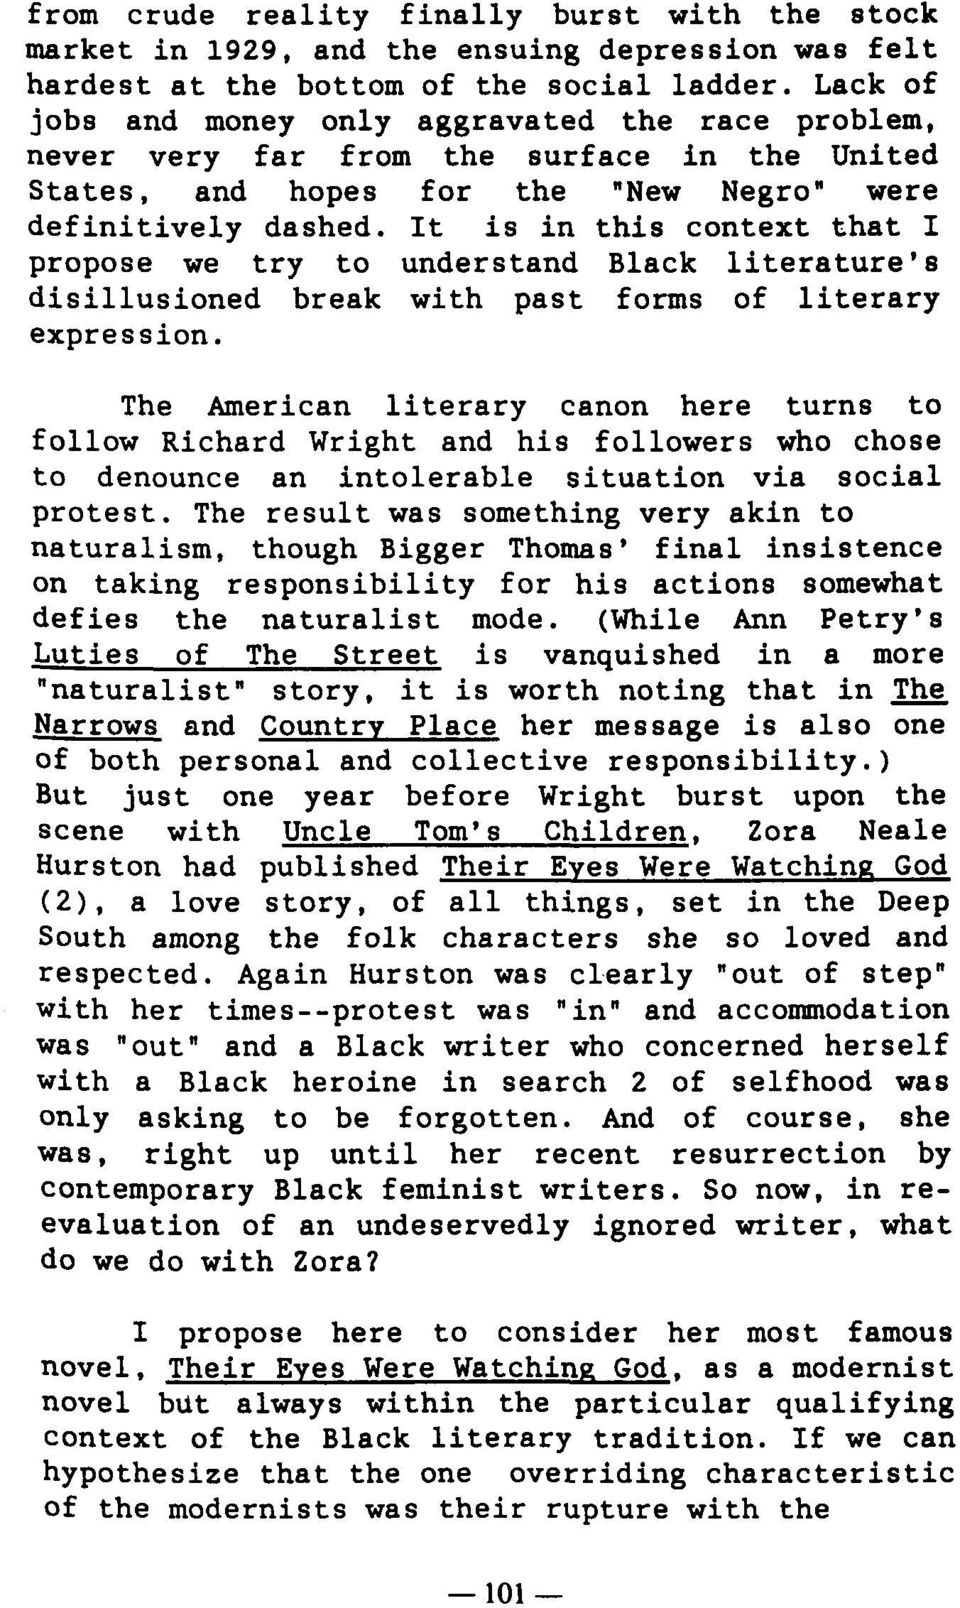 It is in this context that I propose we try to understand Black literature's disillusioned break with past forms of literary expression.